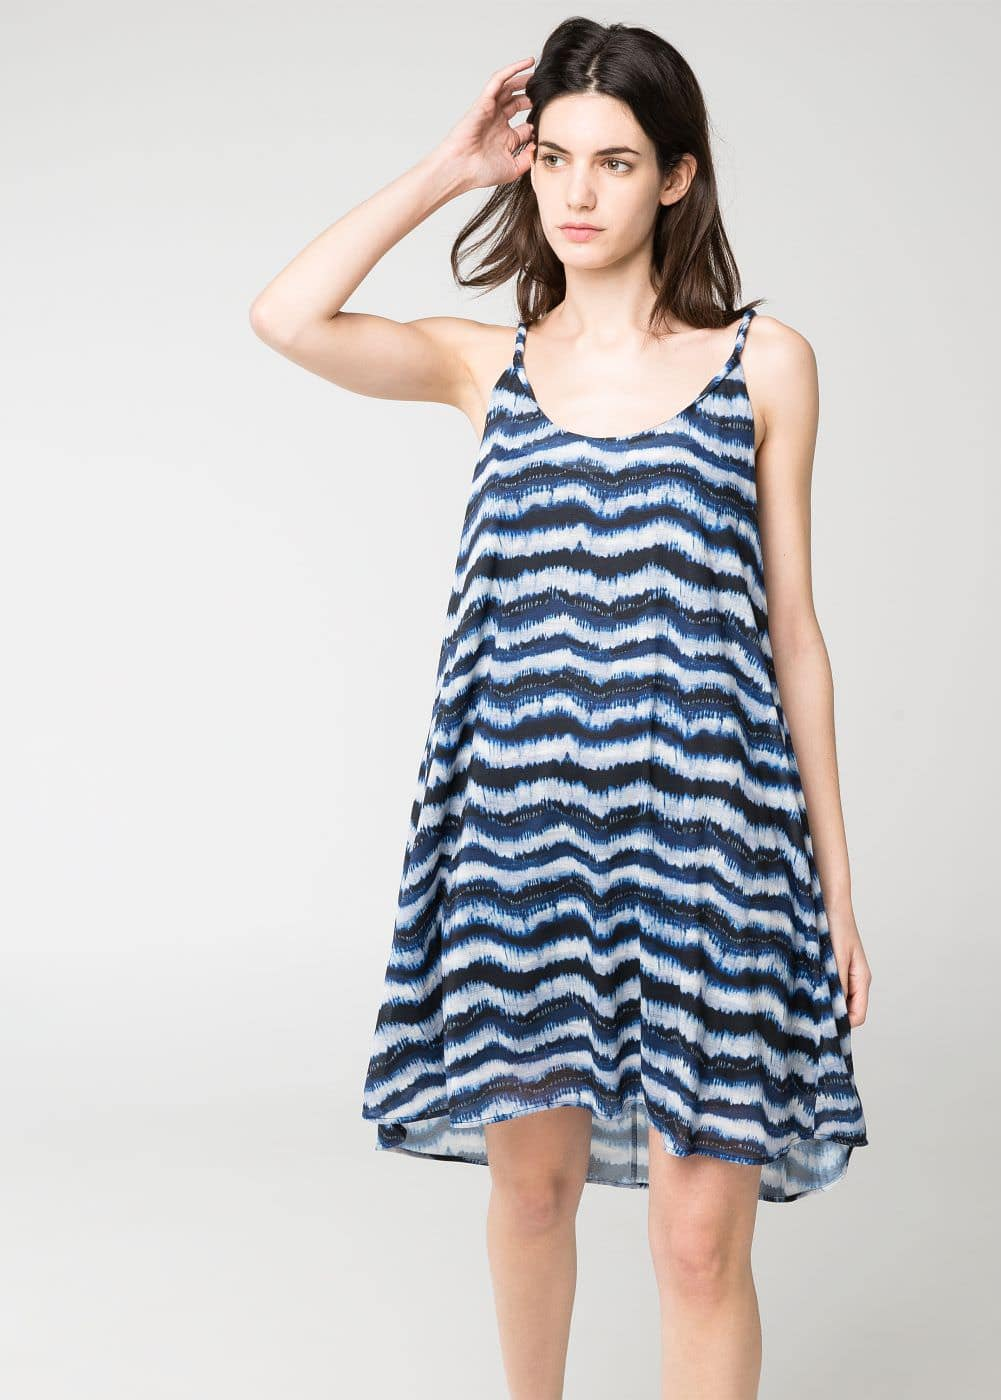 Tie-dye striped dress